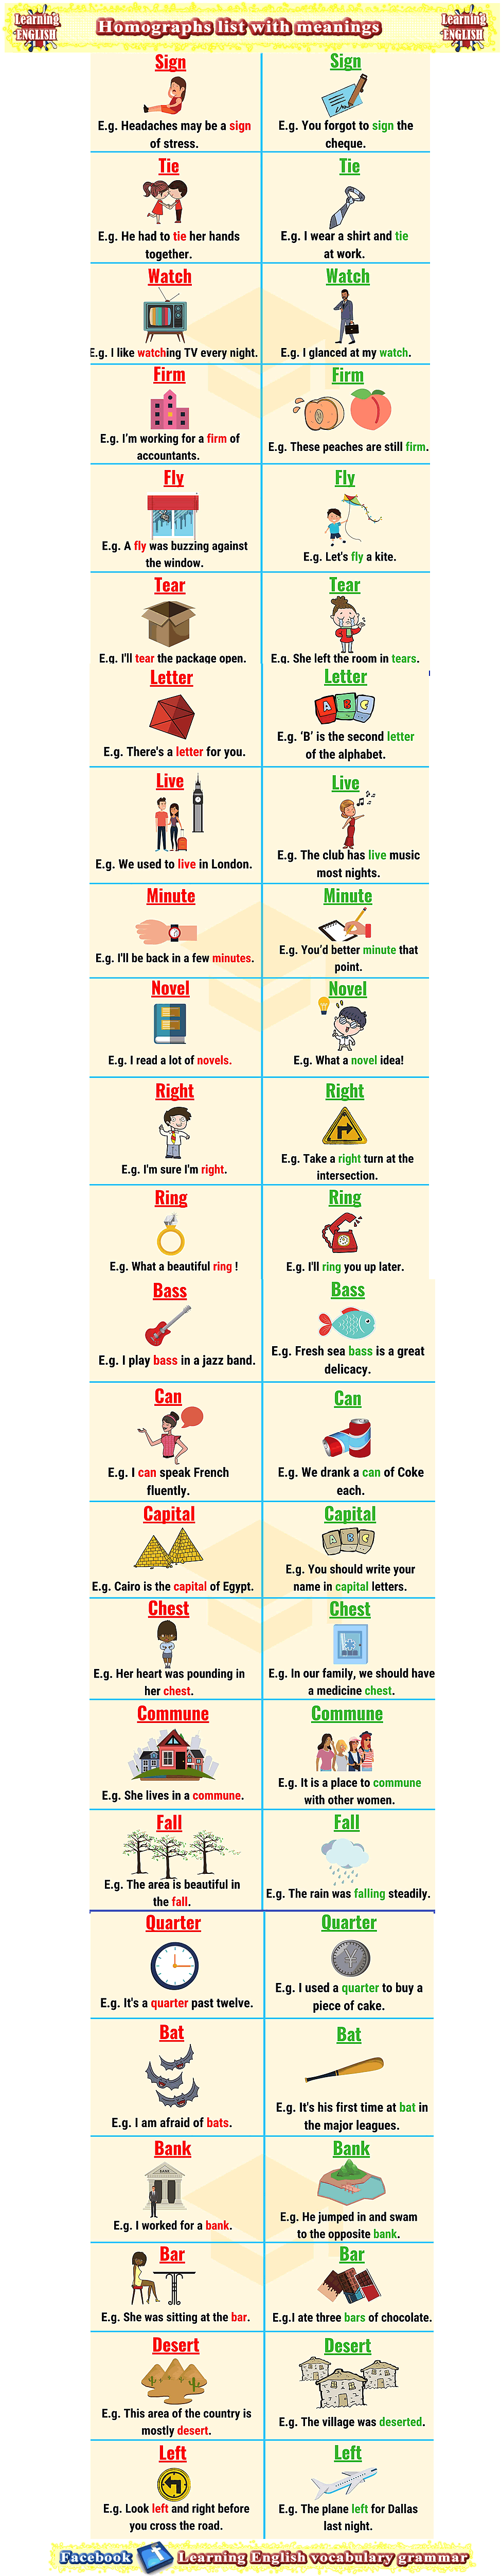 Common Homograph Meaning With Example In A Sentence Paraphrase Gujarati